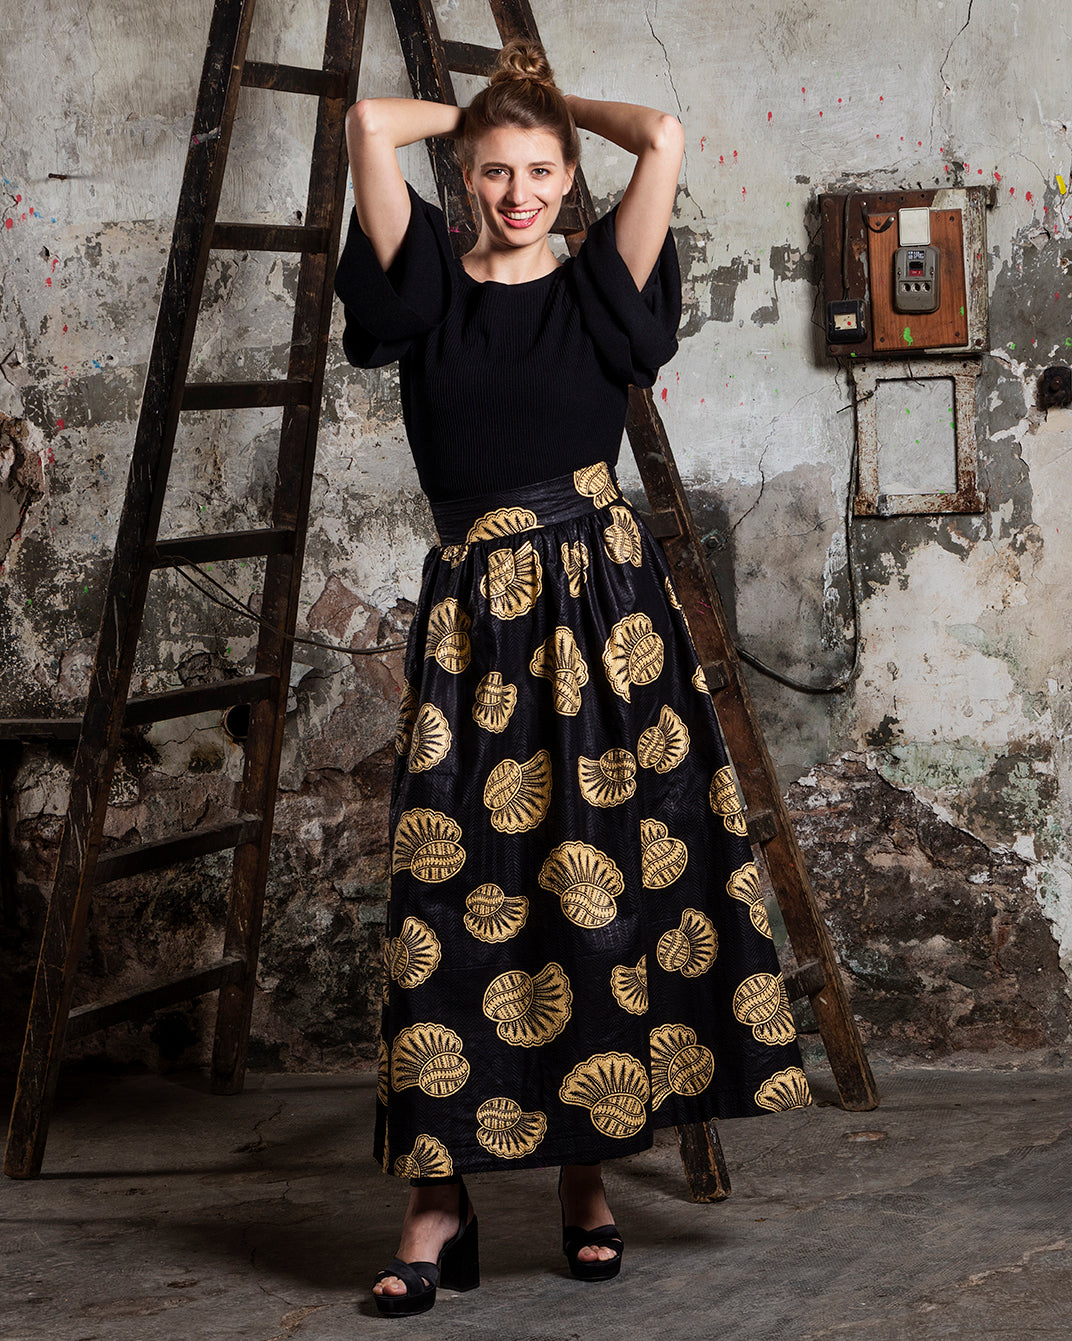 Cora&Lea Woman - Skirt Suzanne, Handmade, Limited Edition, Wax